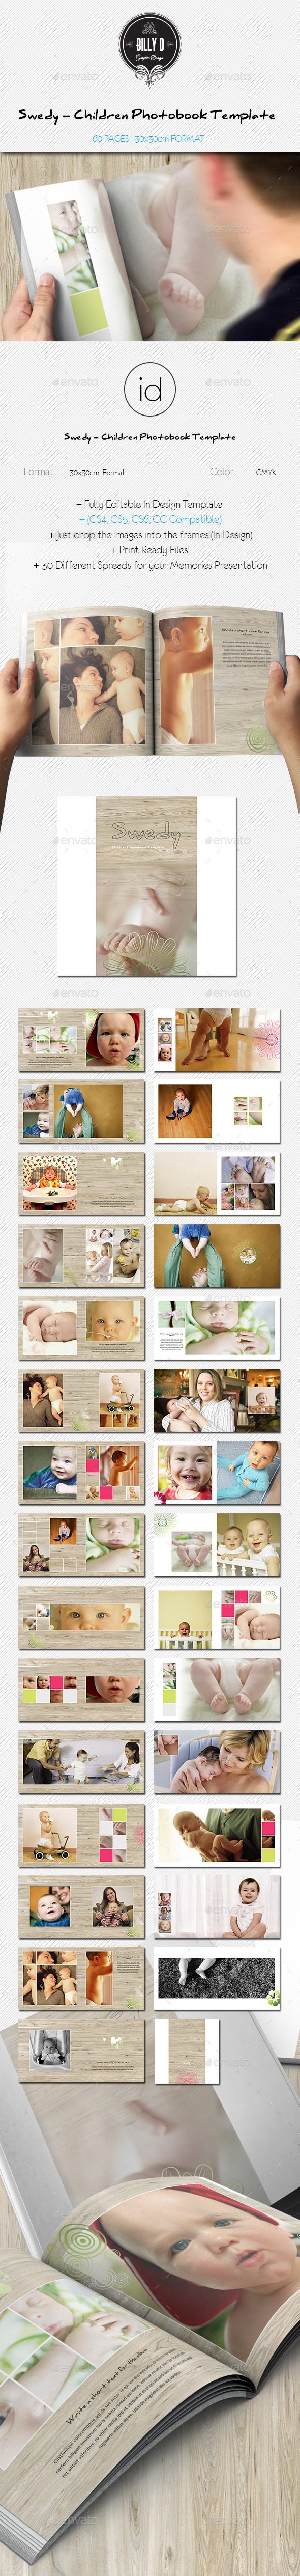 GraphicRiver Swedy Children Photobook Template 9407063